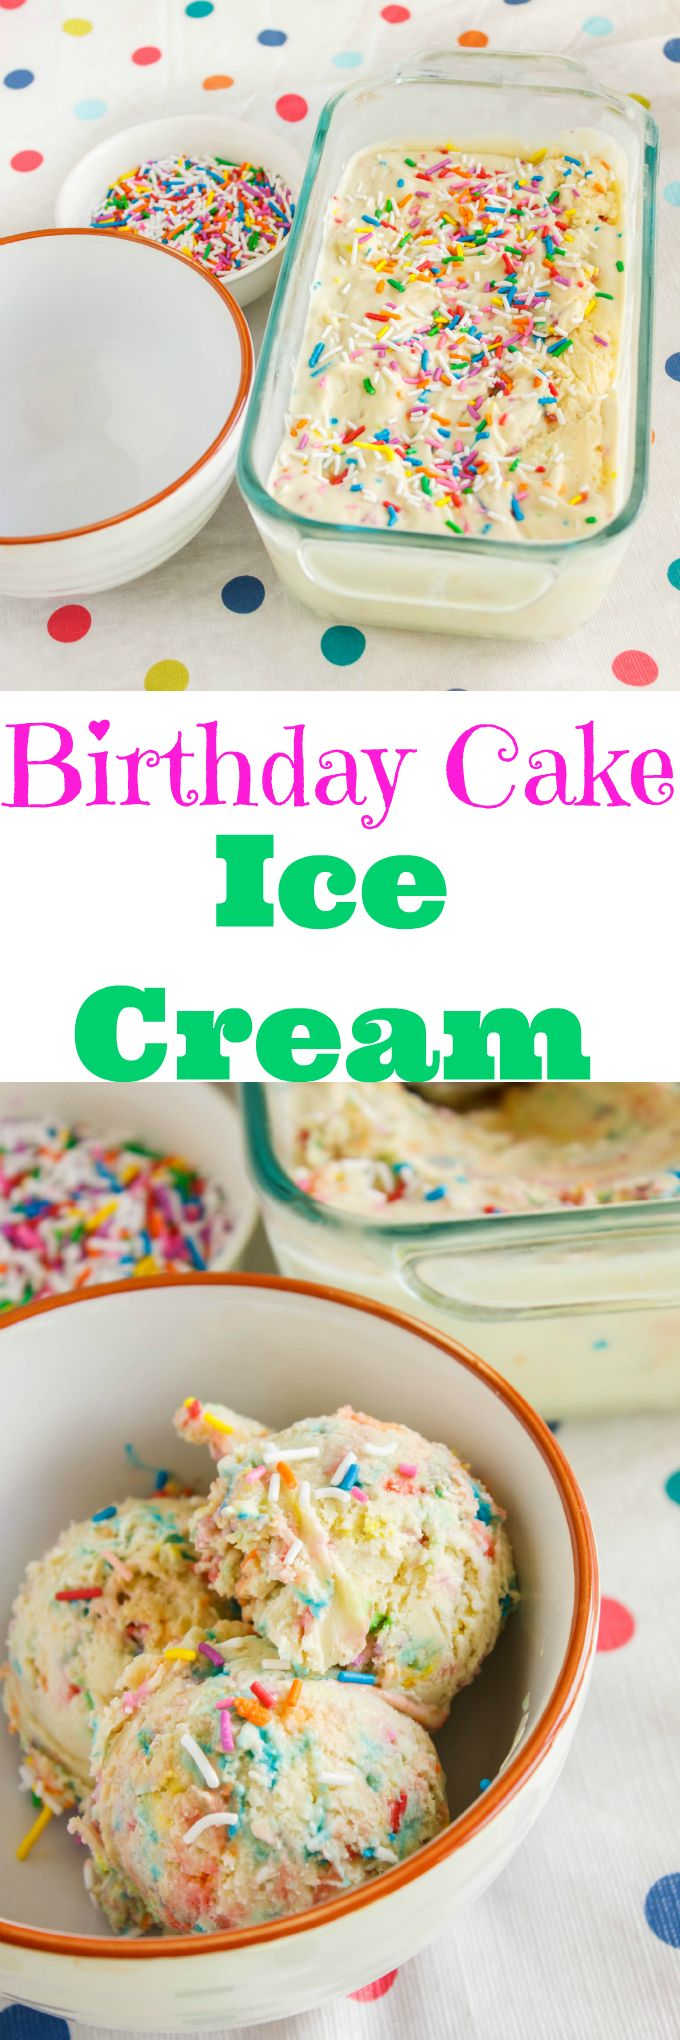 Best 25 Birthday Cake Flavors Ideas That You Will Like On